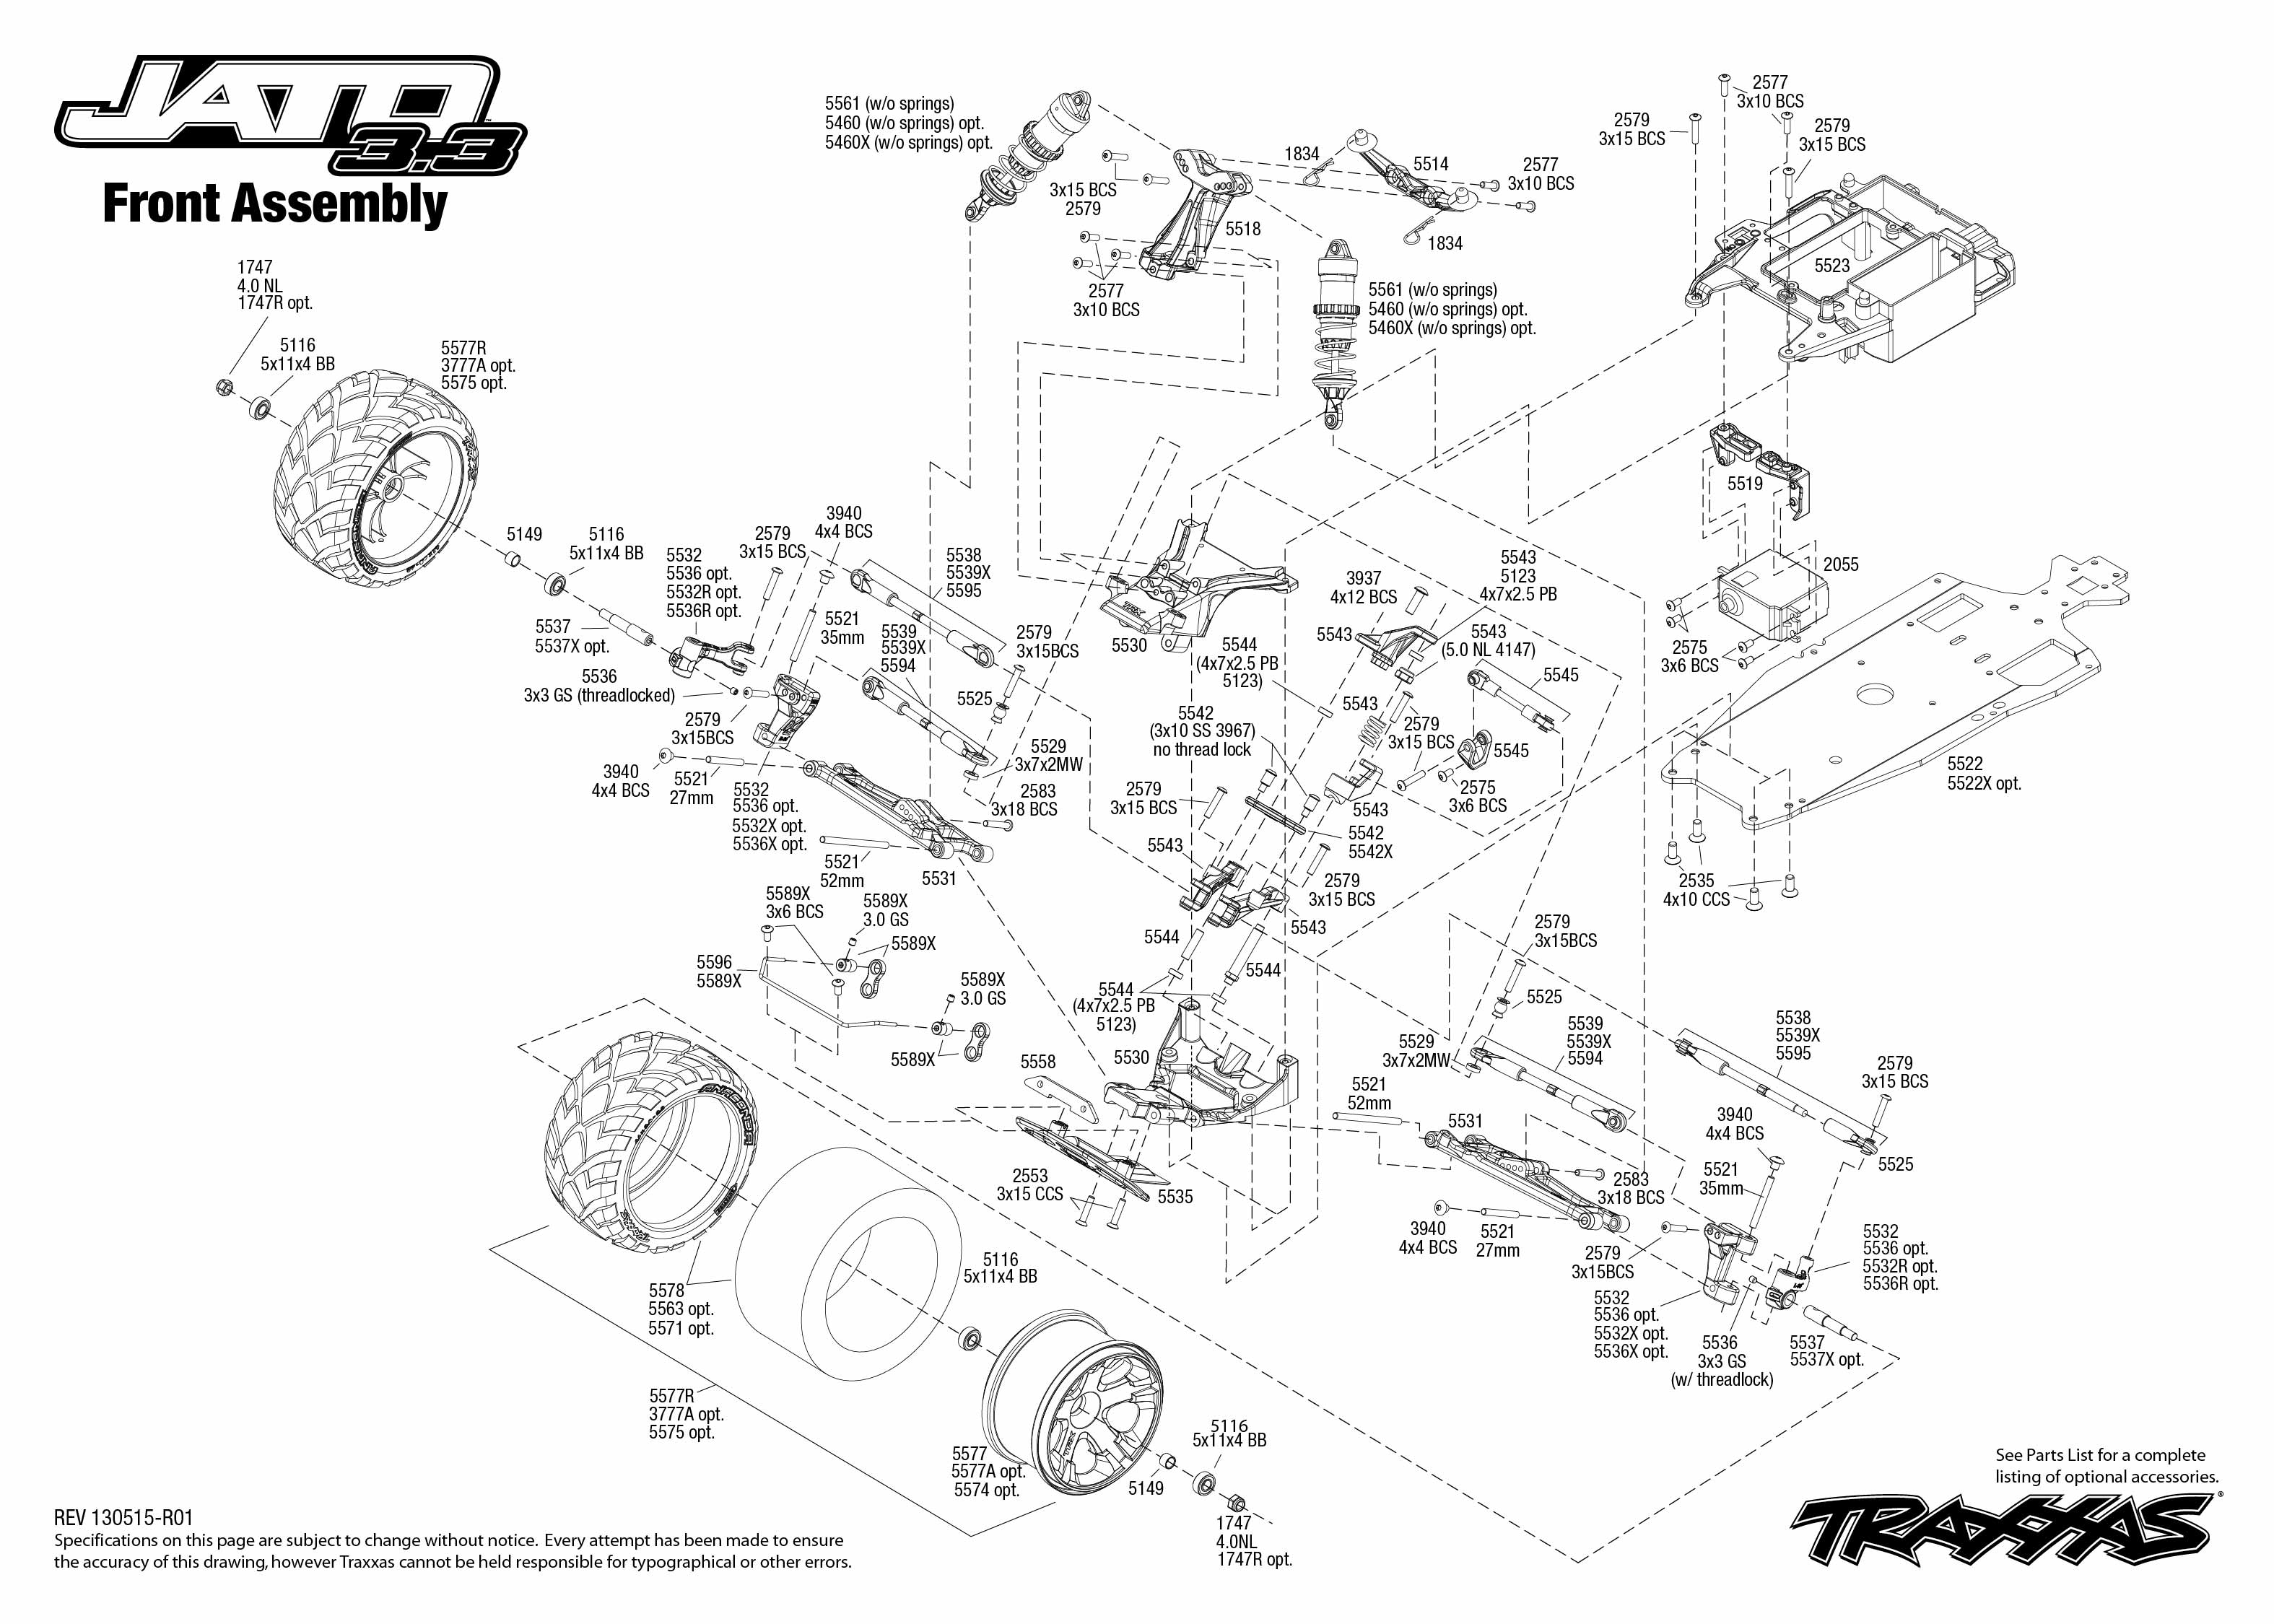 dodge challenger start with Traxxas Wiring Diagram on 19611 Mini Cooper as well Supercars 20Prototypes together with 613789 New Wiring Coil Got Hot in addition Cars likewise Chevy Turn Signal Relay Wiring Diagram.